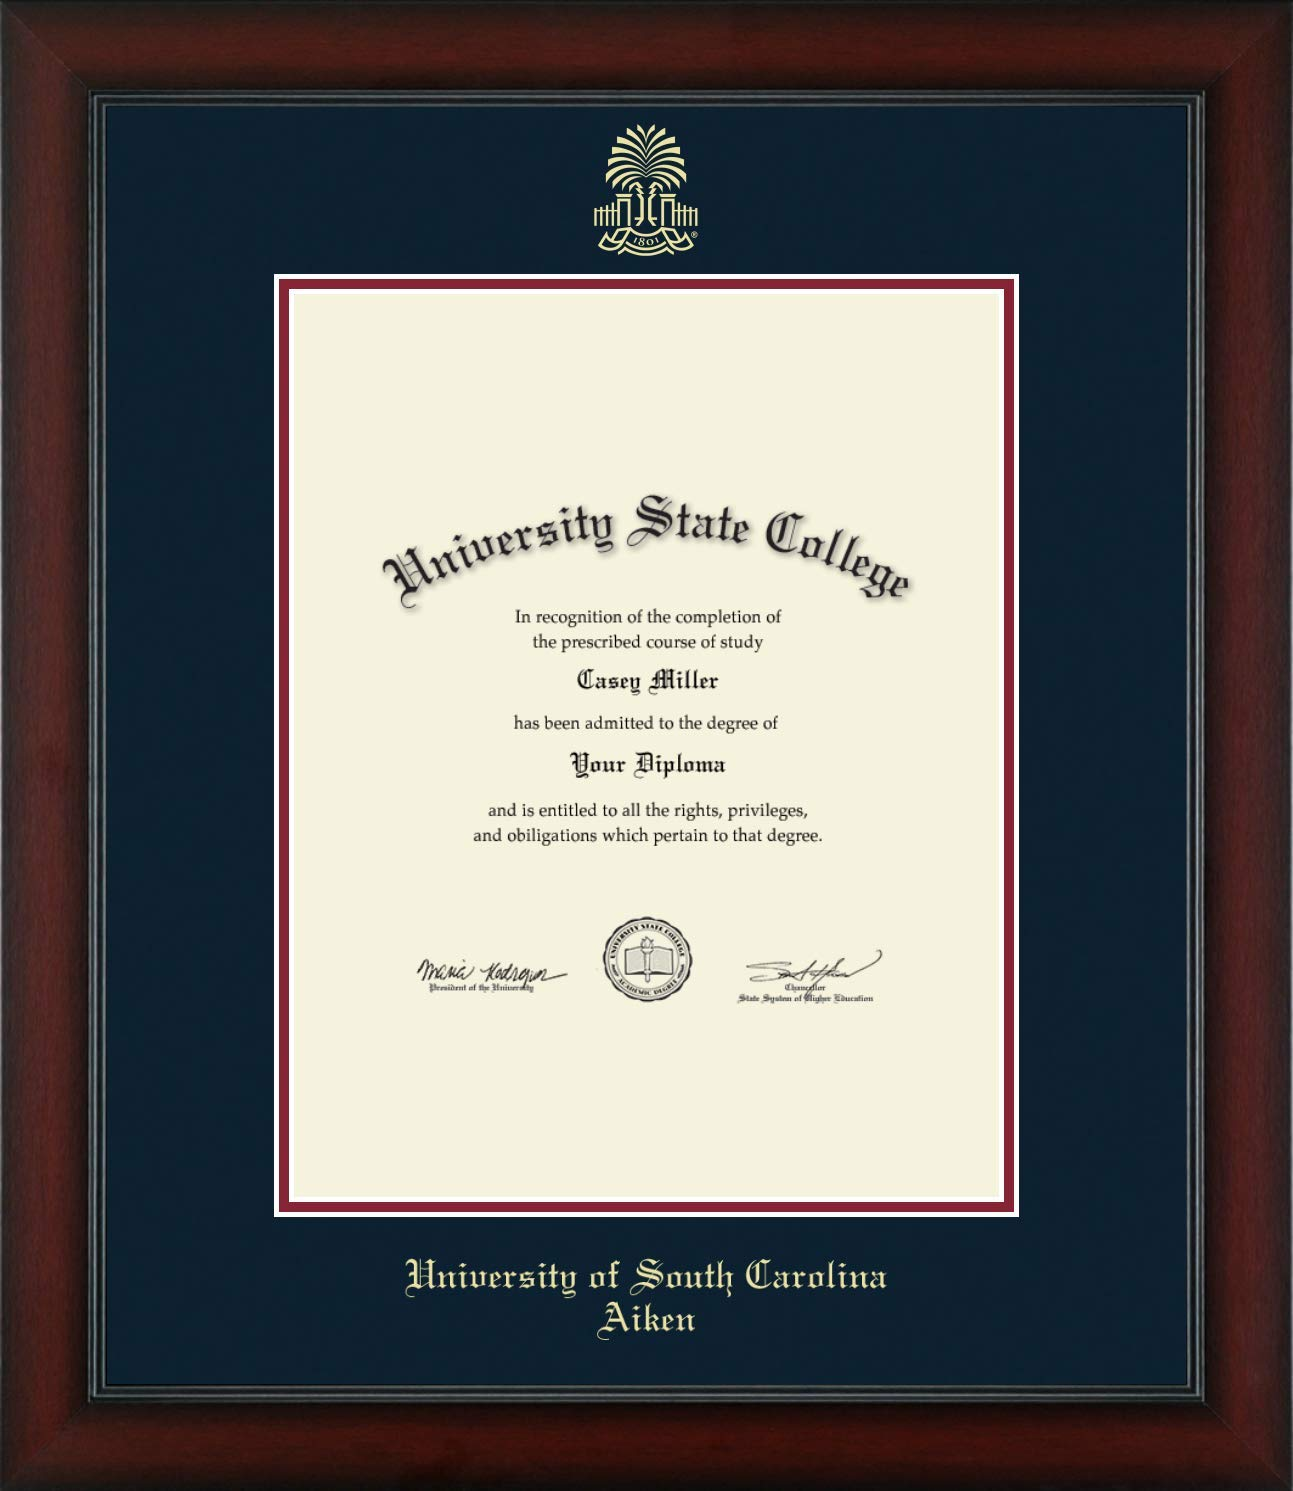 University of South Carolina Aiken - Officially Licensed - Gold Embossed Diploma Frame - Diploma Size 11'' x 14''